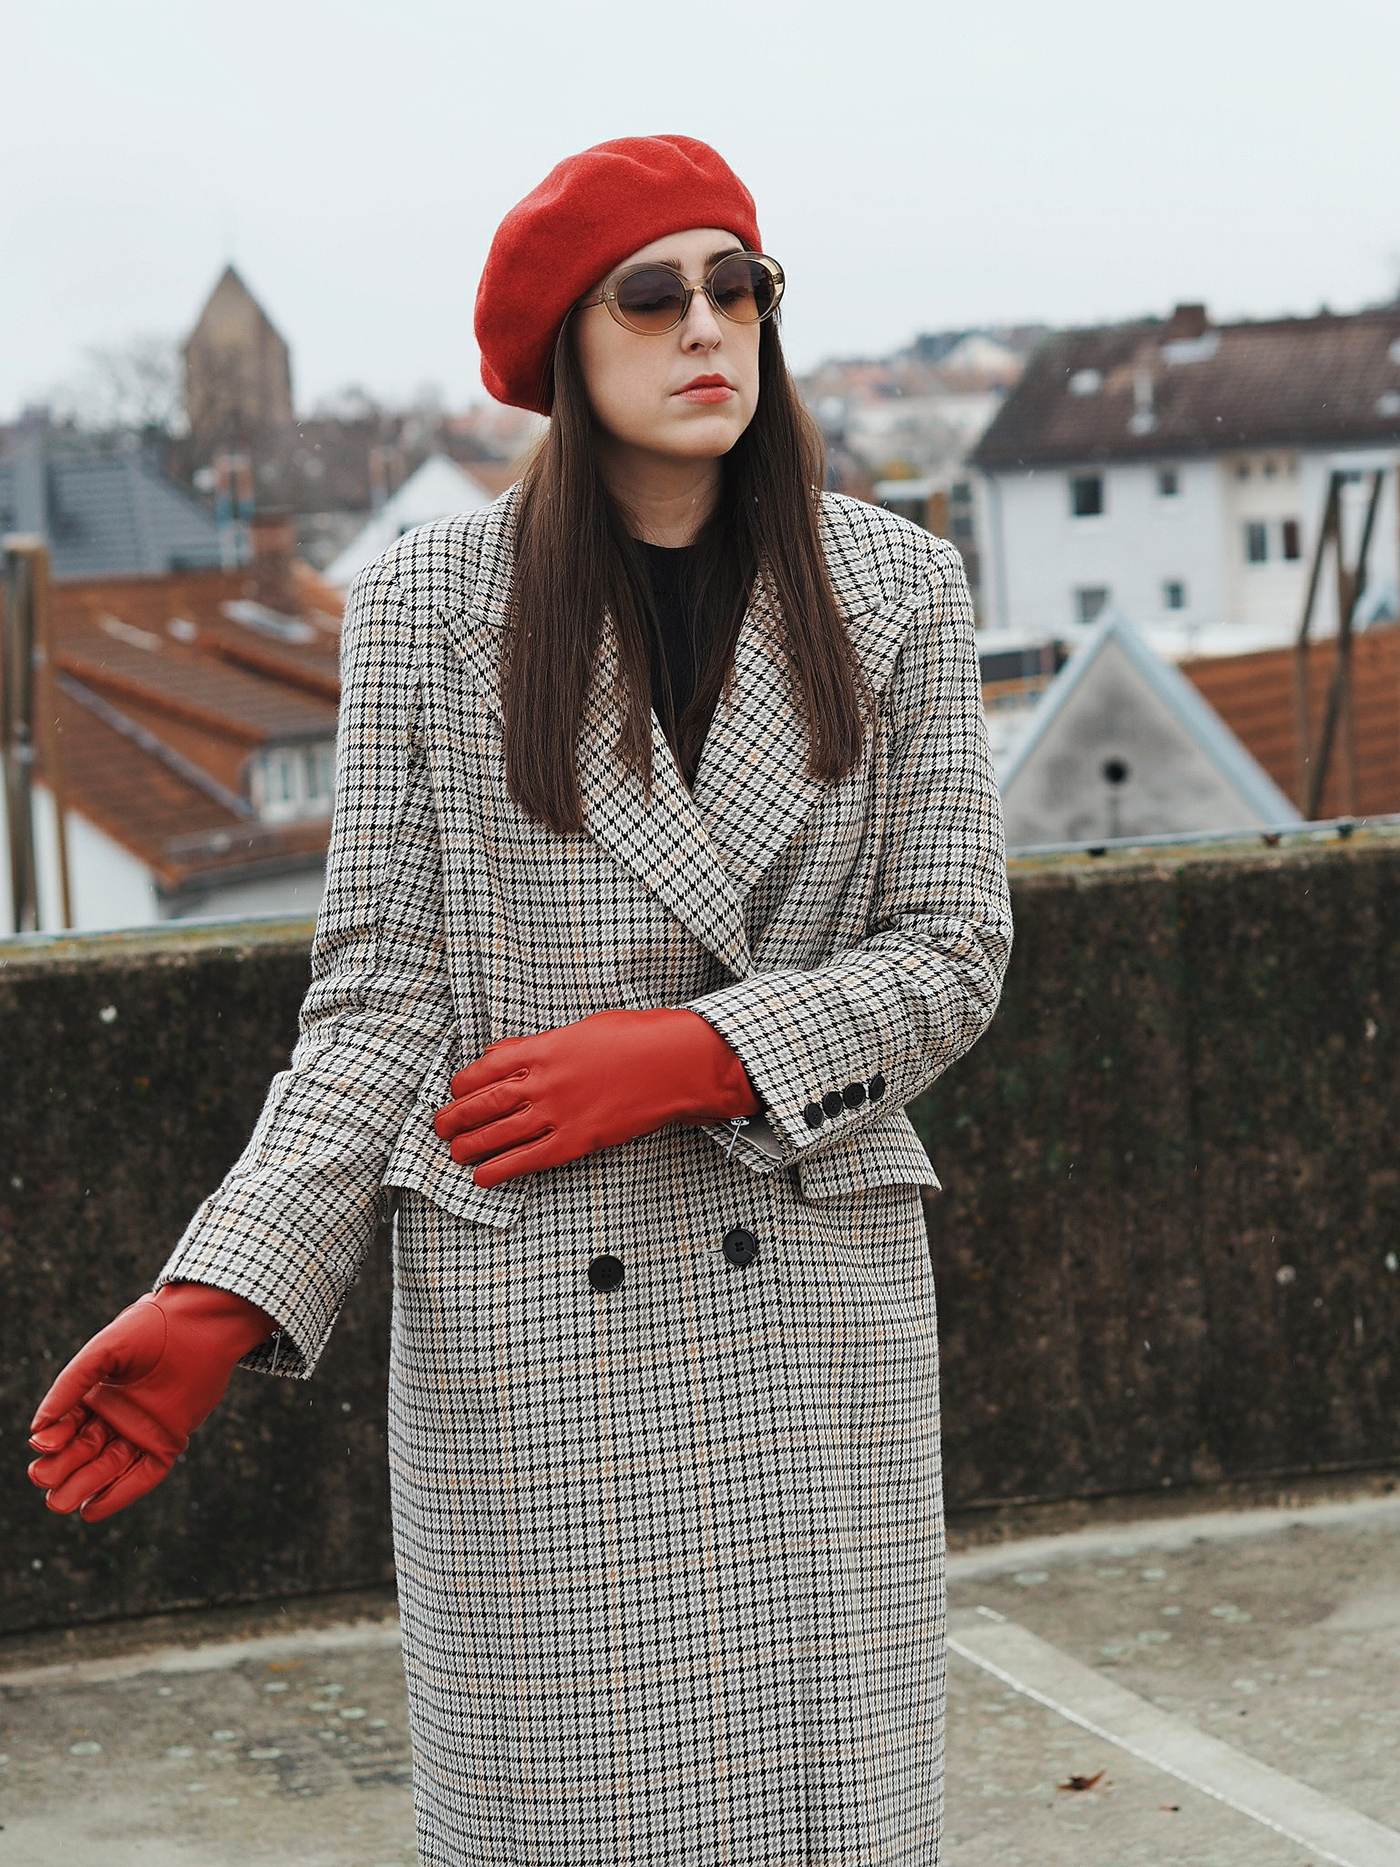 somewhere-nowhere-plaid-coat-red-beret-outfit-look-hm-trend-julia-carevic